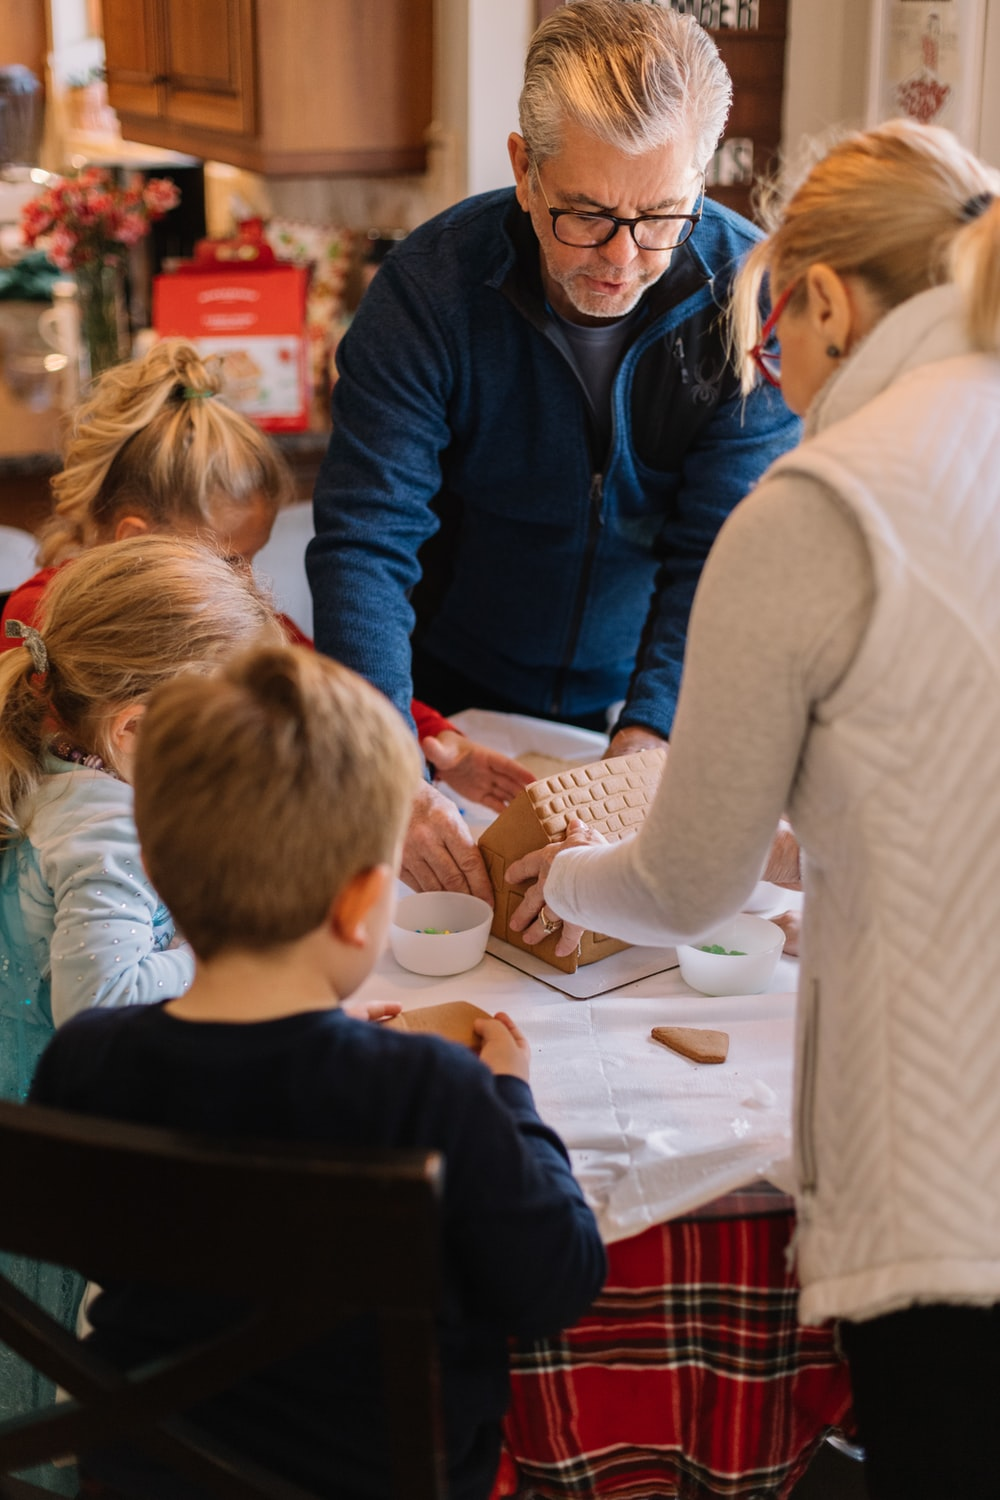 two women standing and three children sitting while preparing gingerbread house